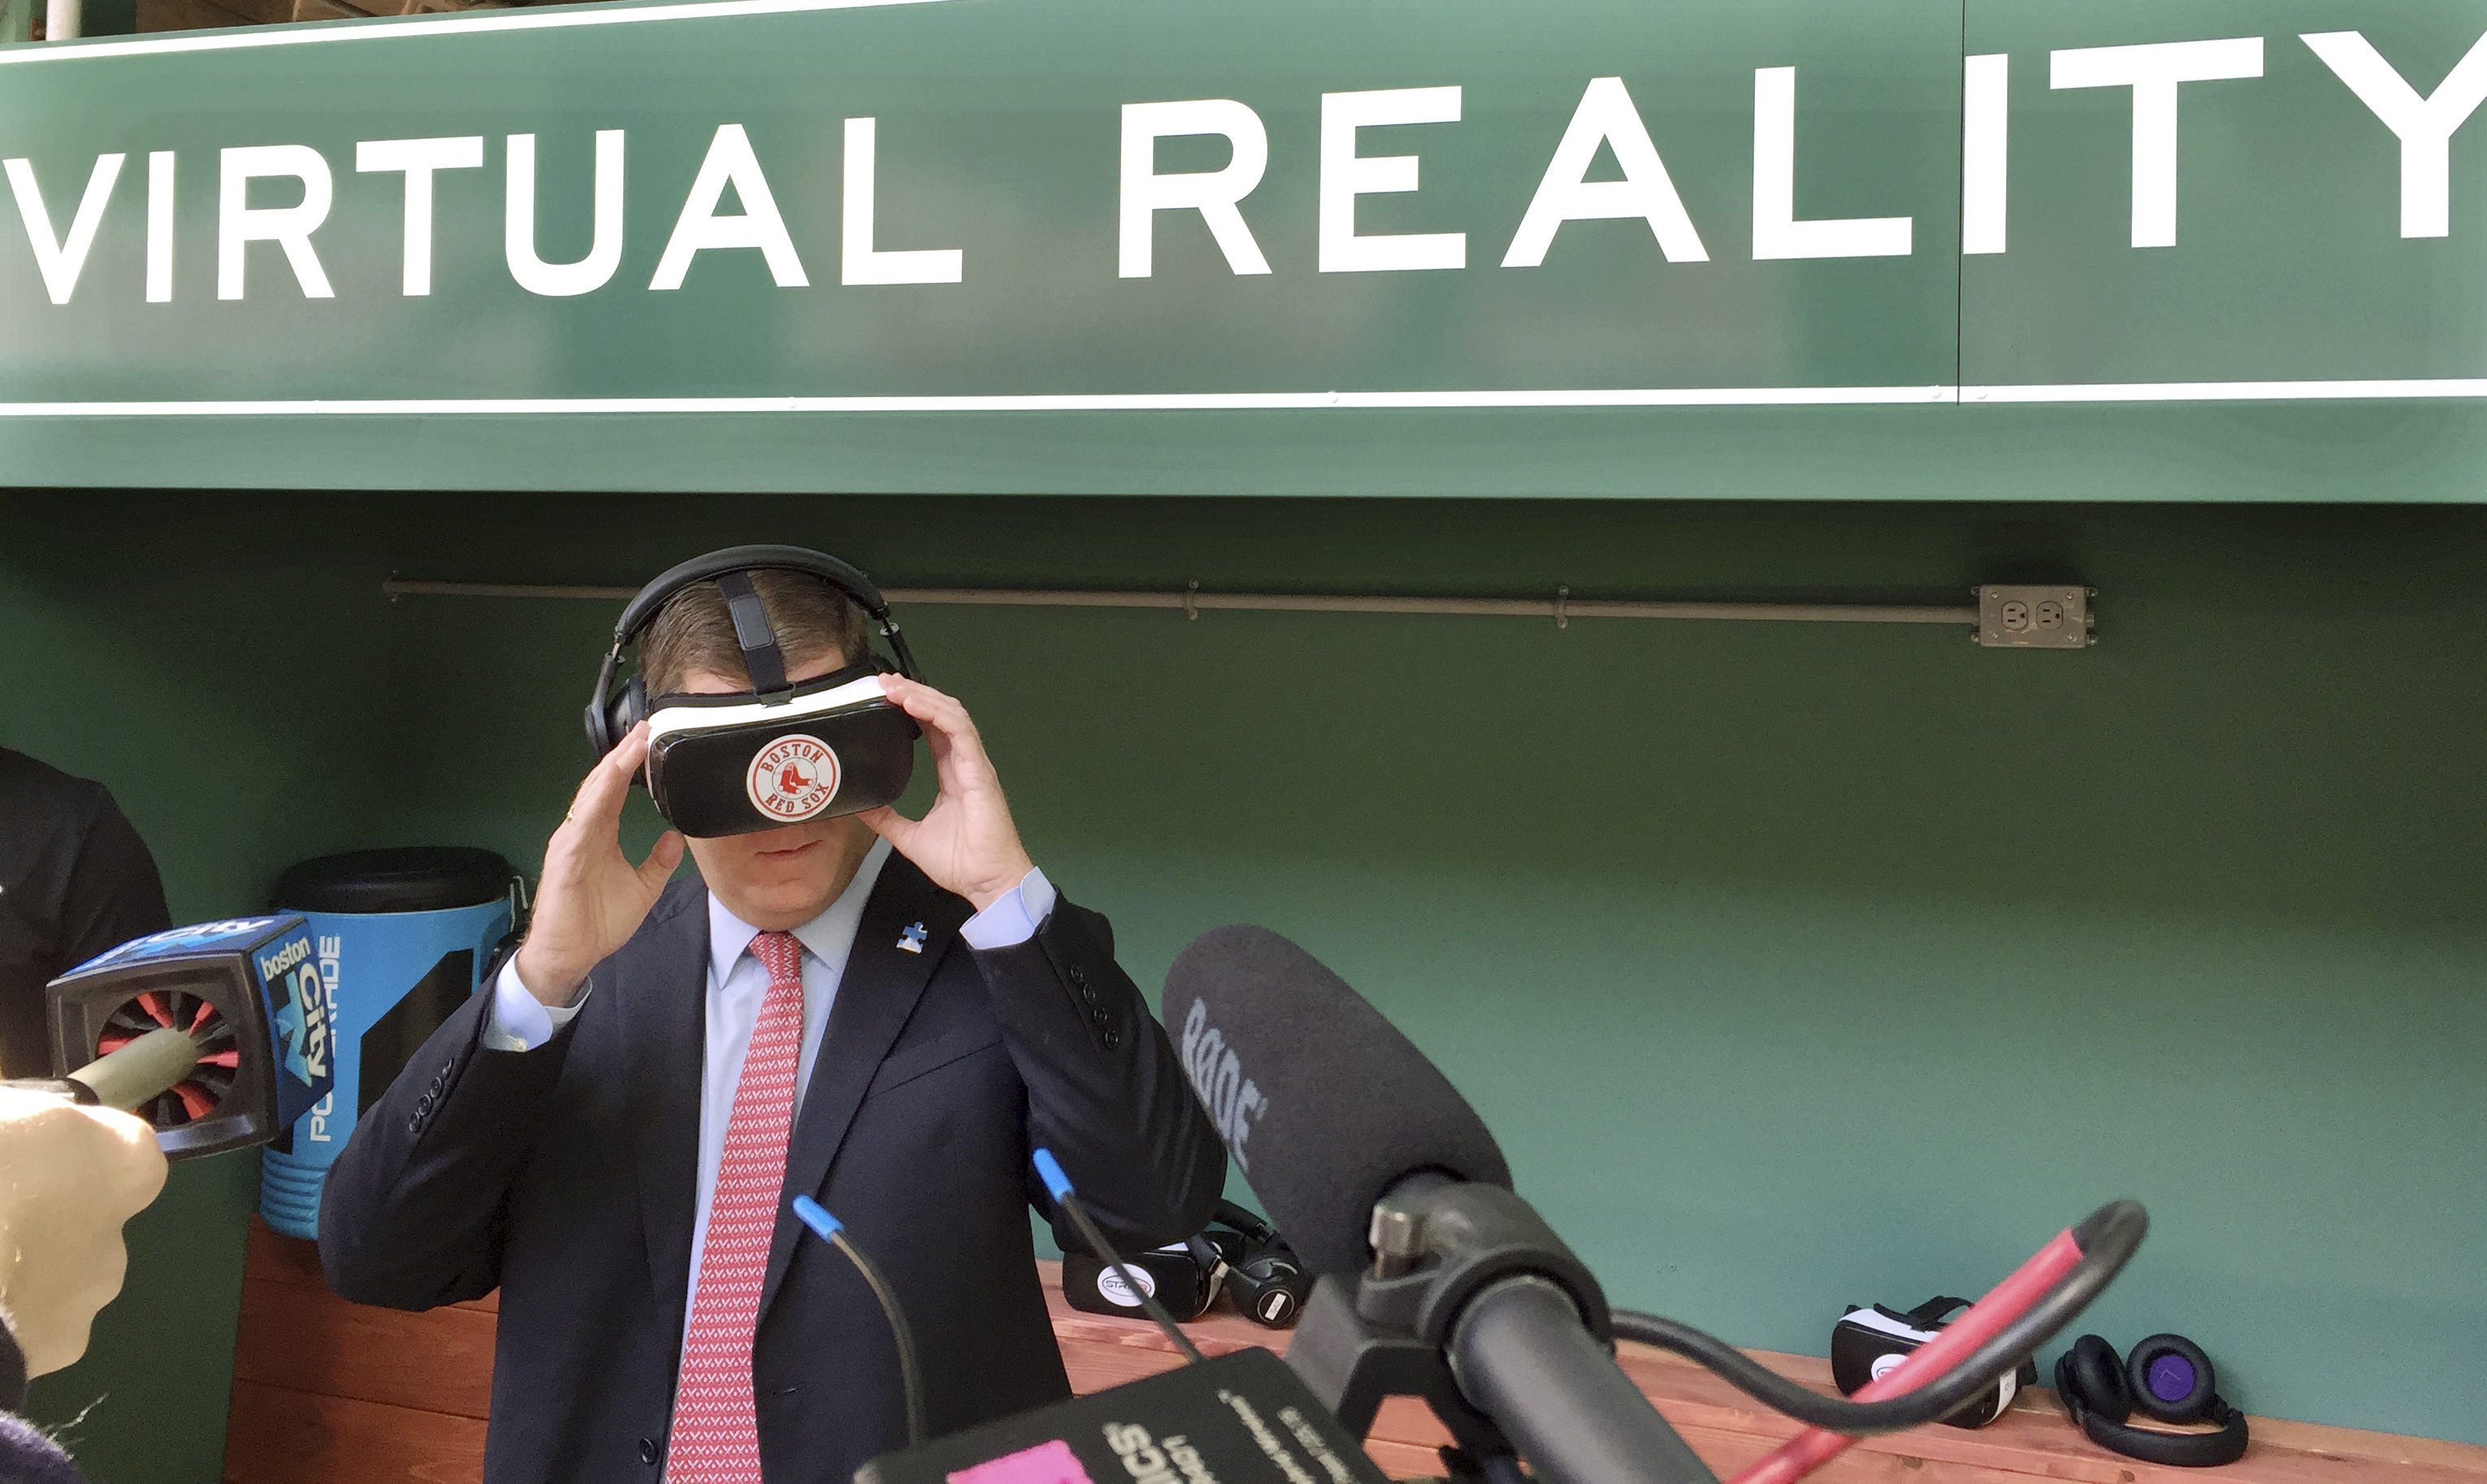 Boston Mayor Marty Walsh tries out a virtual reality device during a tour of the latest improvements at Fenway Park Friday, April 8, 2016, in Boston, in advance of Monday's Boston Red Sox home opener against the Baltimore Orioles. The free, two-minute vir